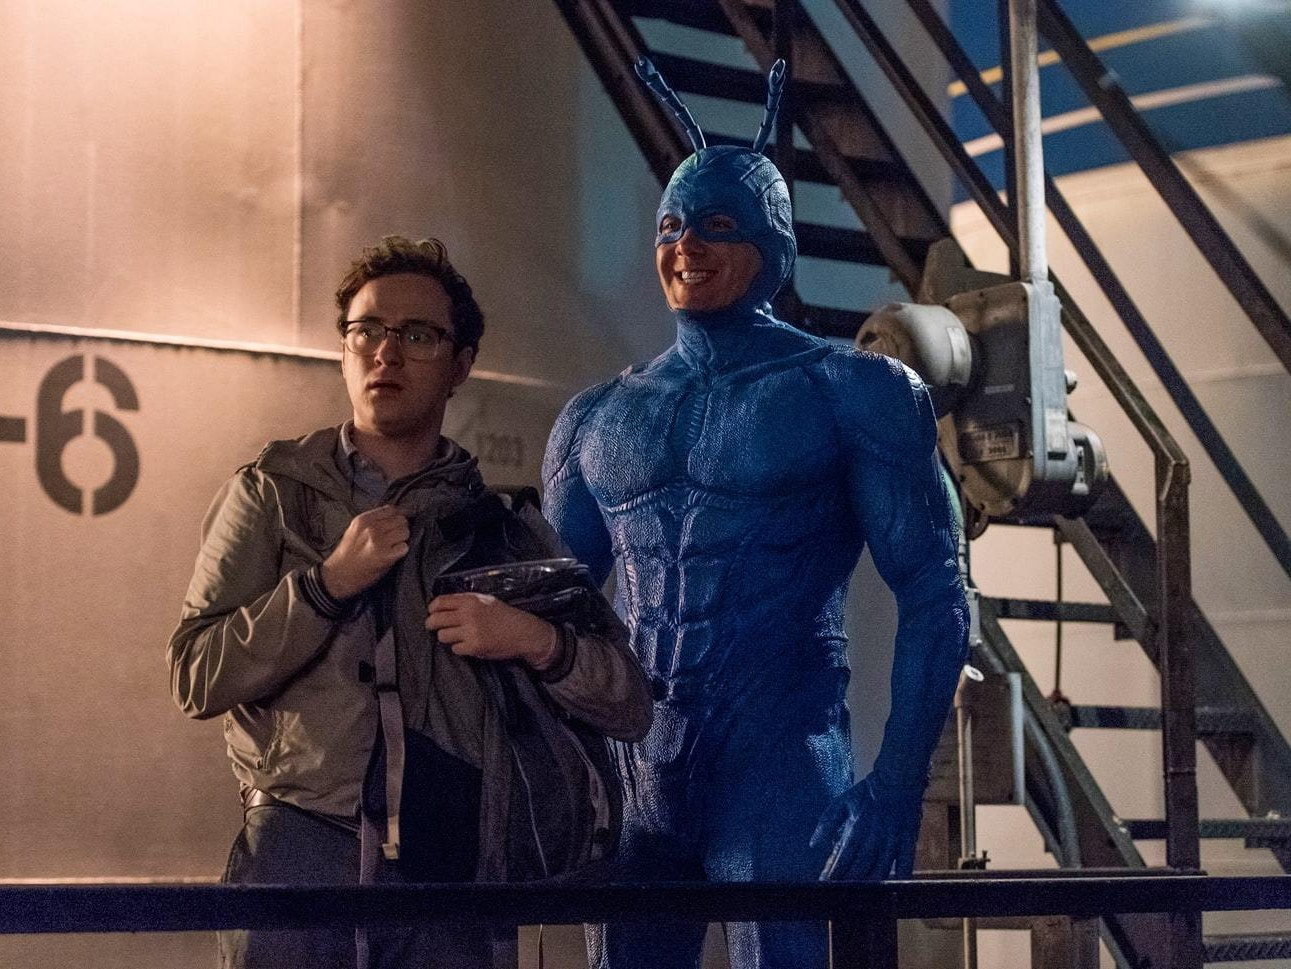 Amazon Gets a Spoonful With a Season Order of 'The Tick'